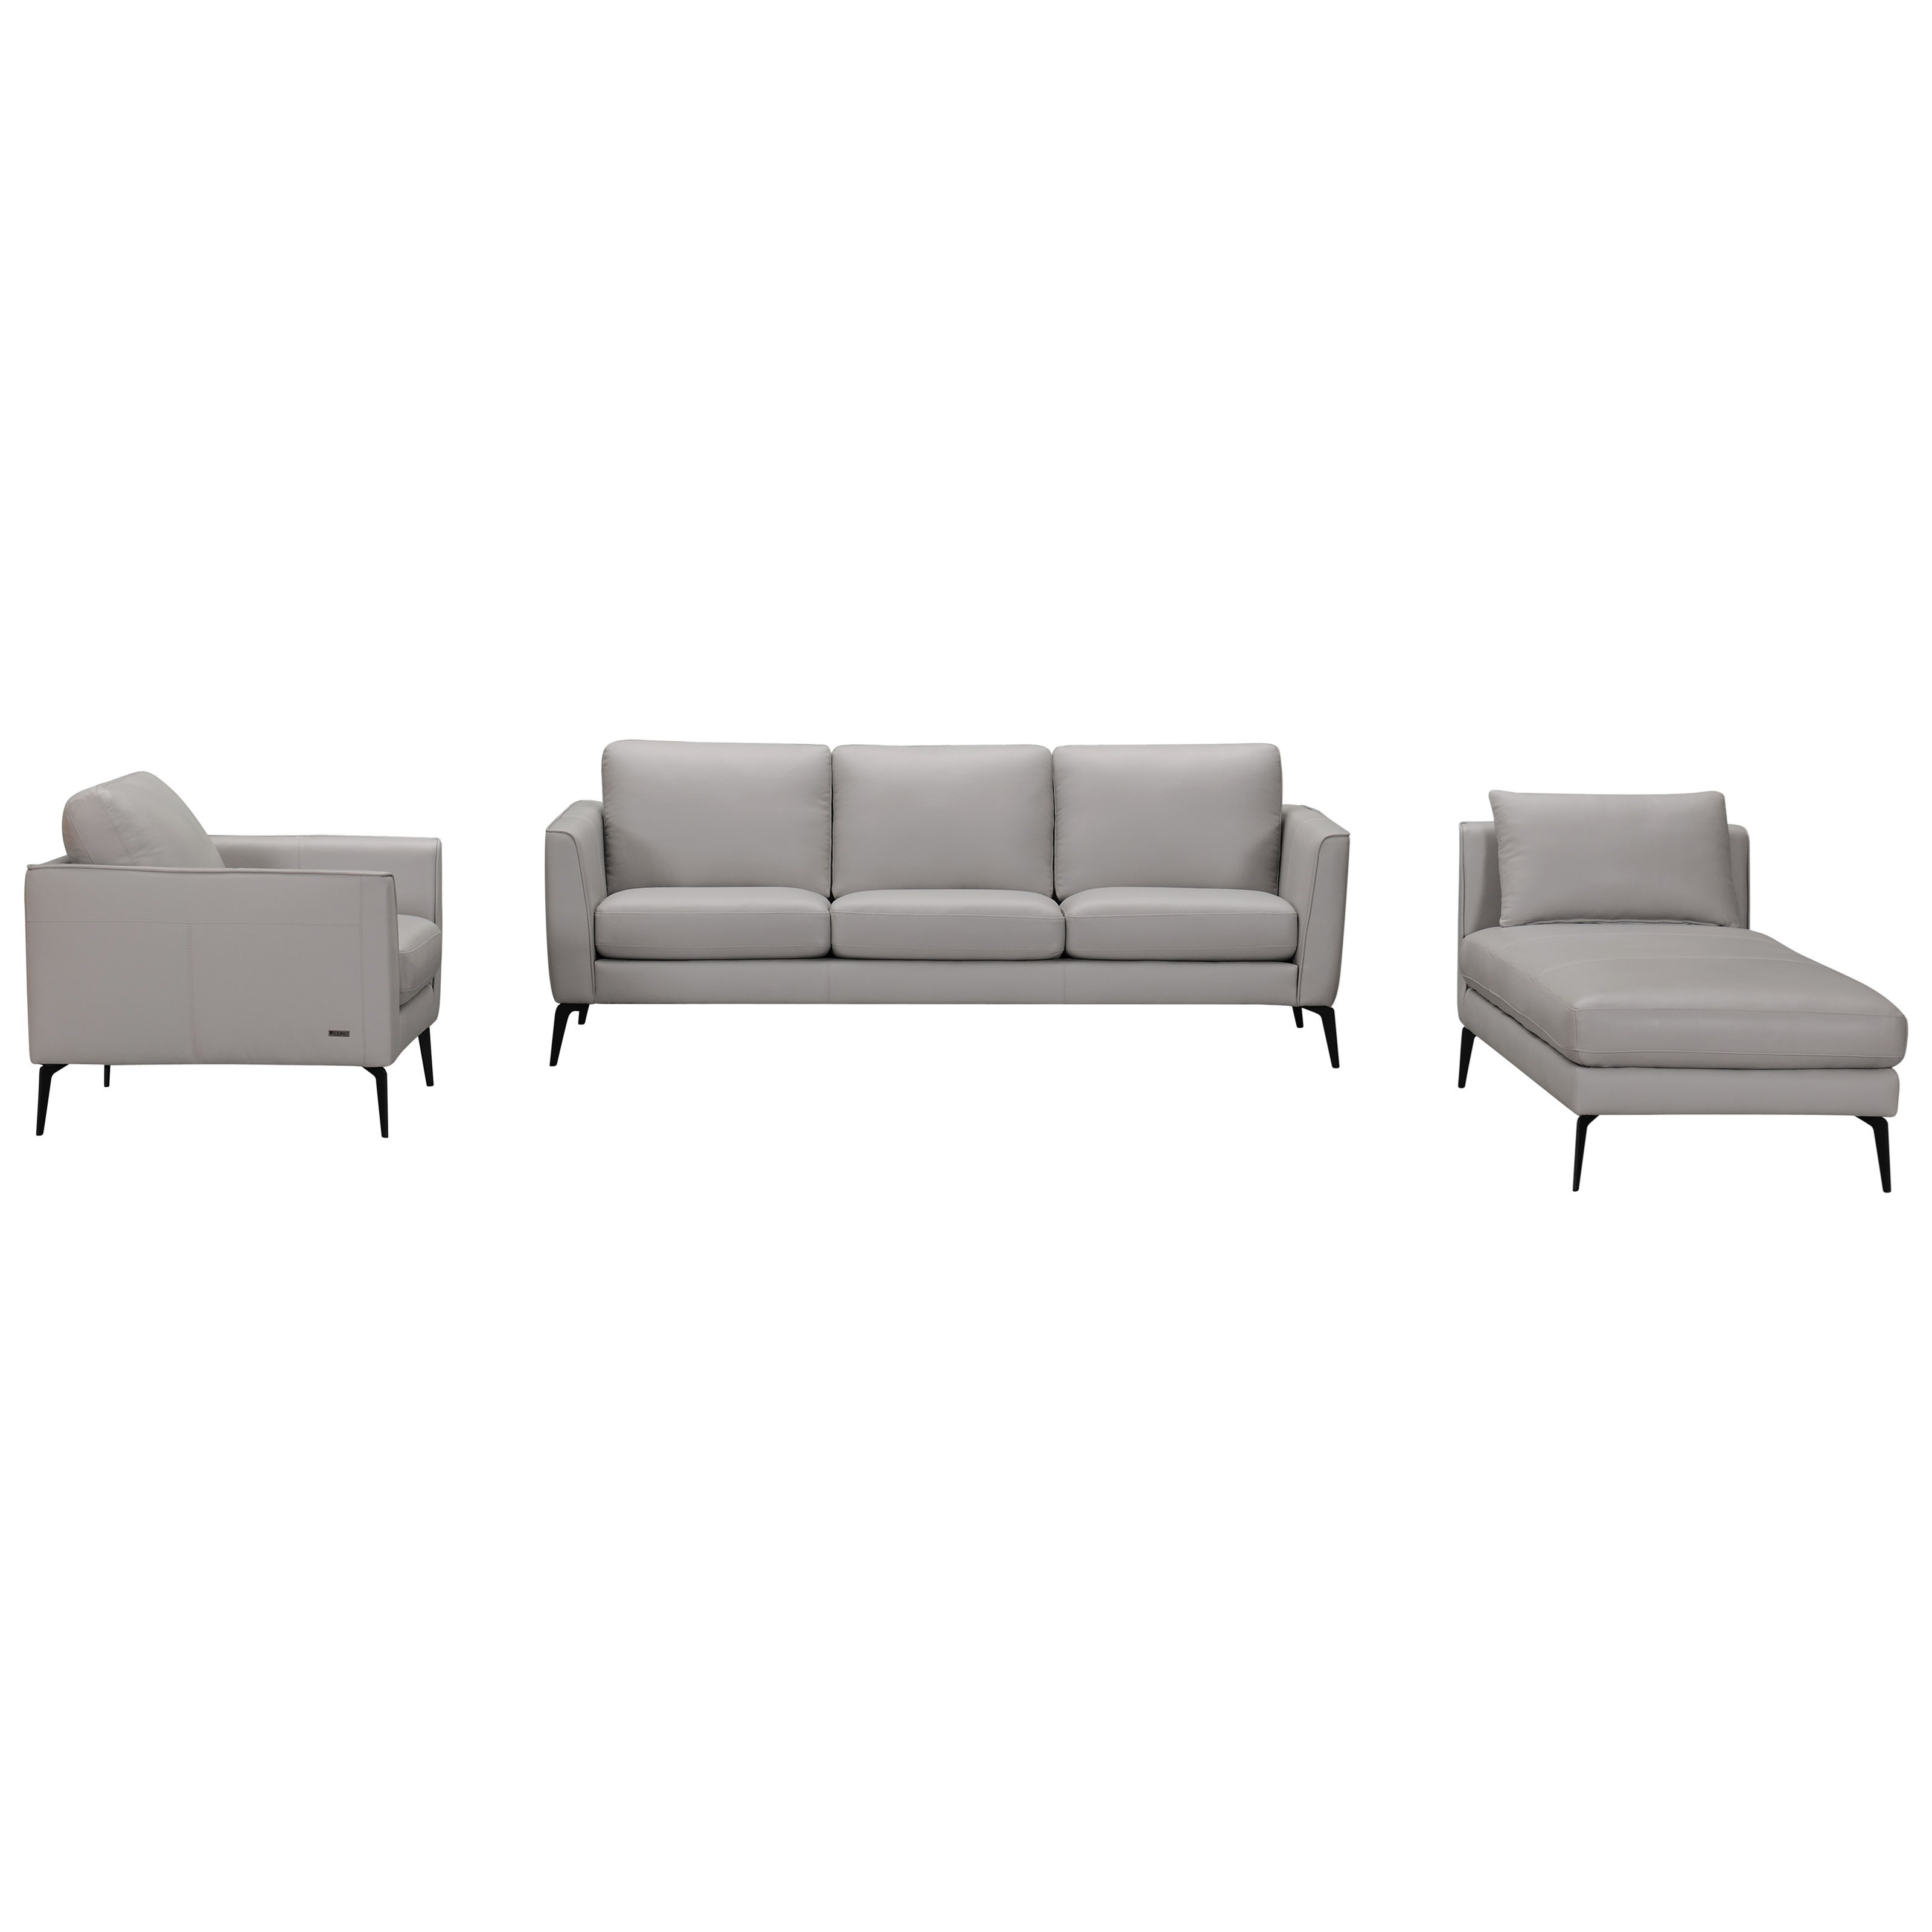 31800 Living Room Group by Violino at Furniture Superstore - Rochester, MN